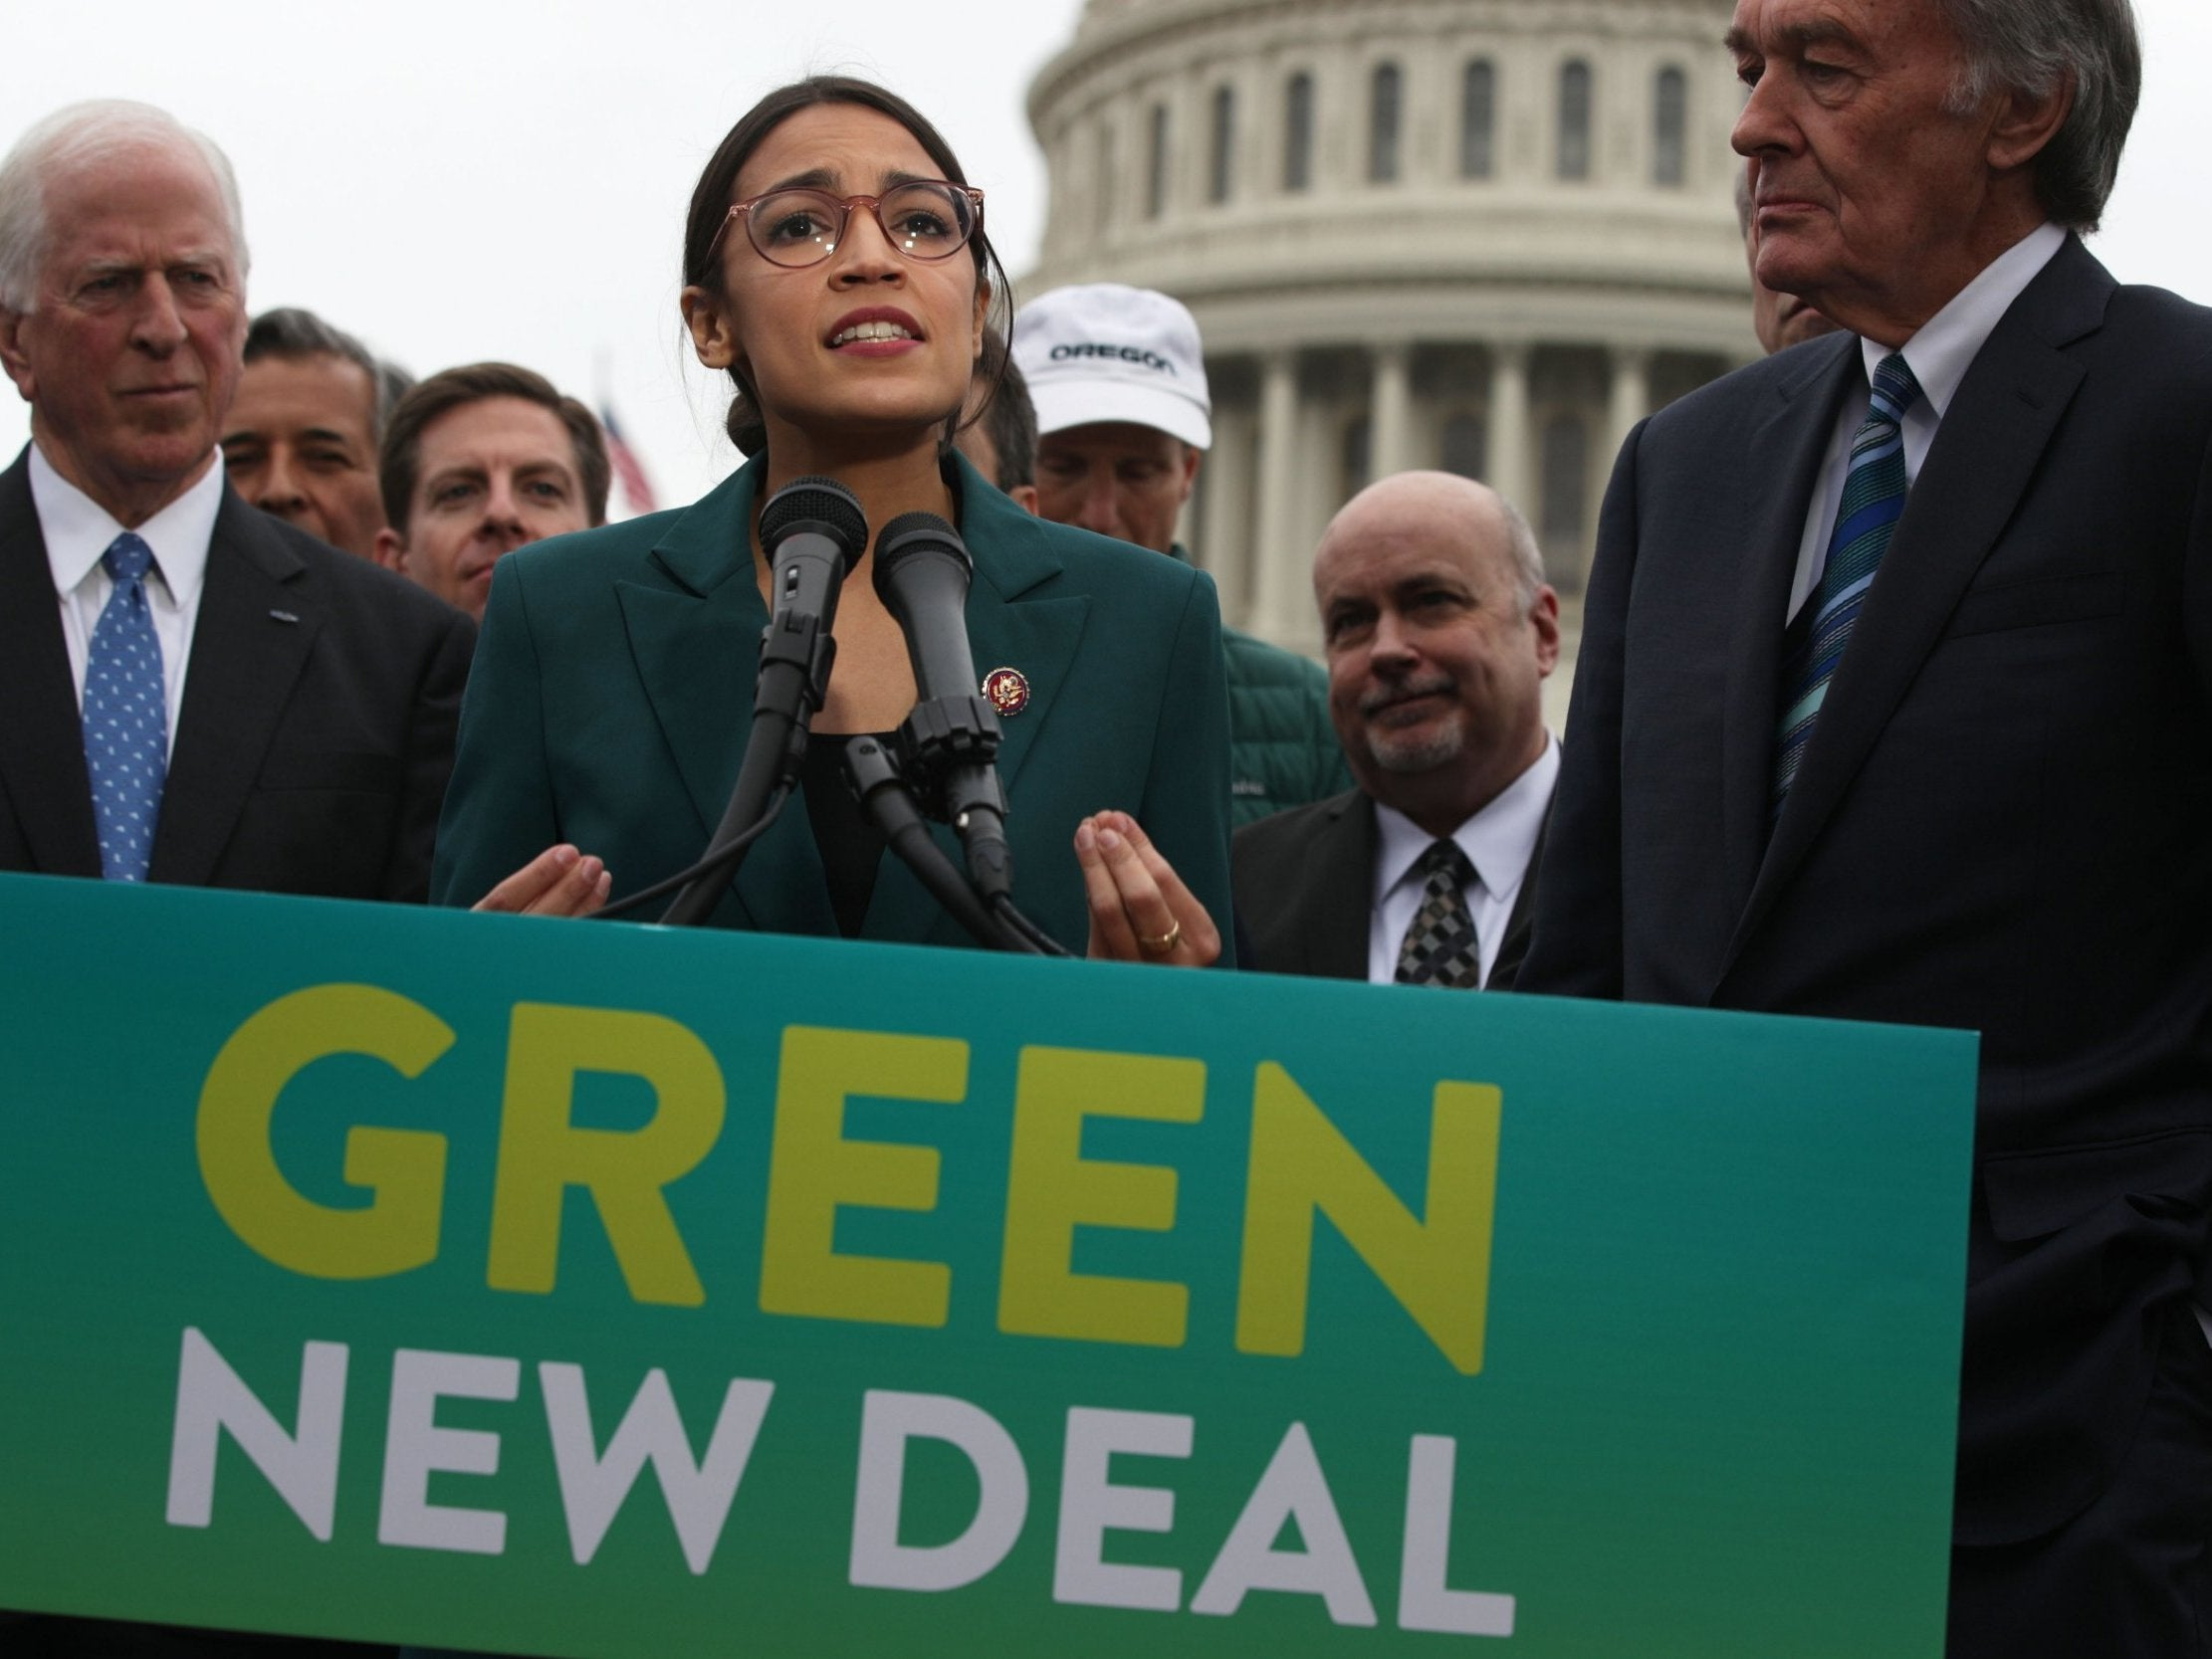 Green New Deal: Alexandria Ocasio-Cortez proposes sweeping plan to save the world from climate change